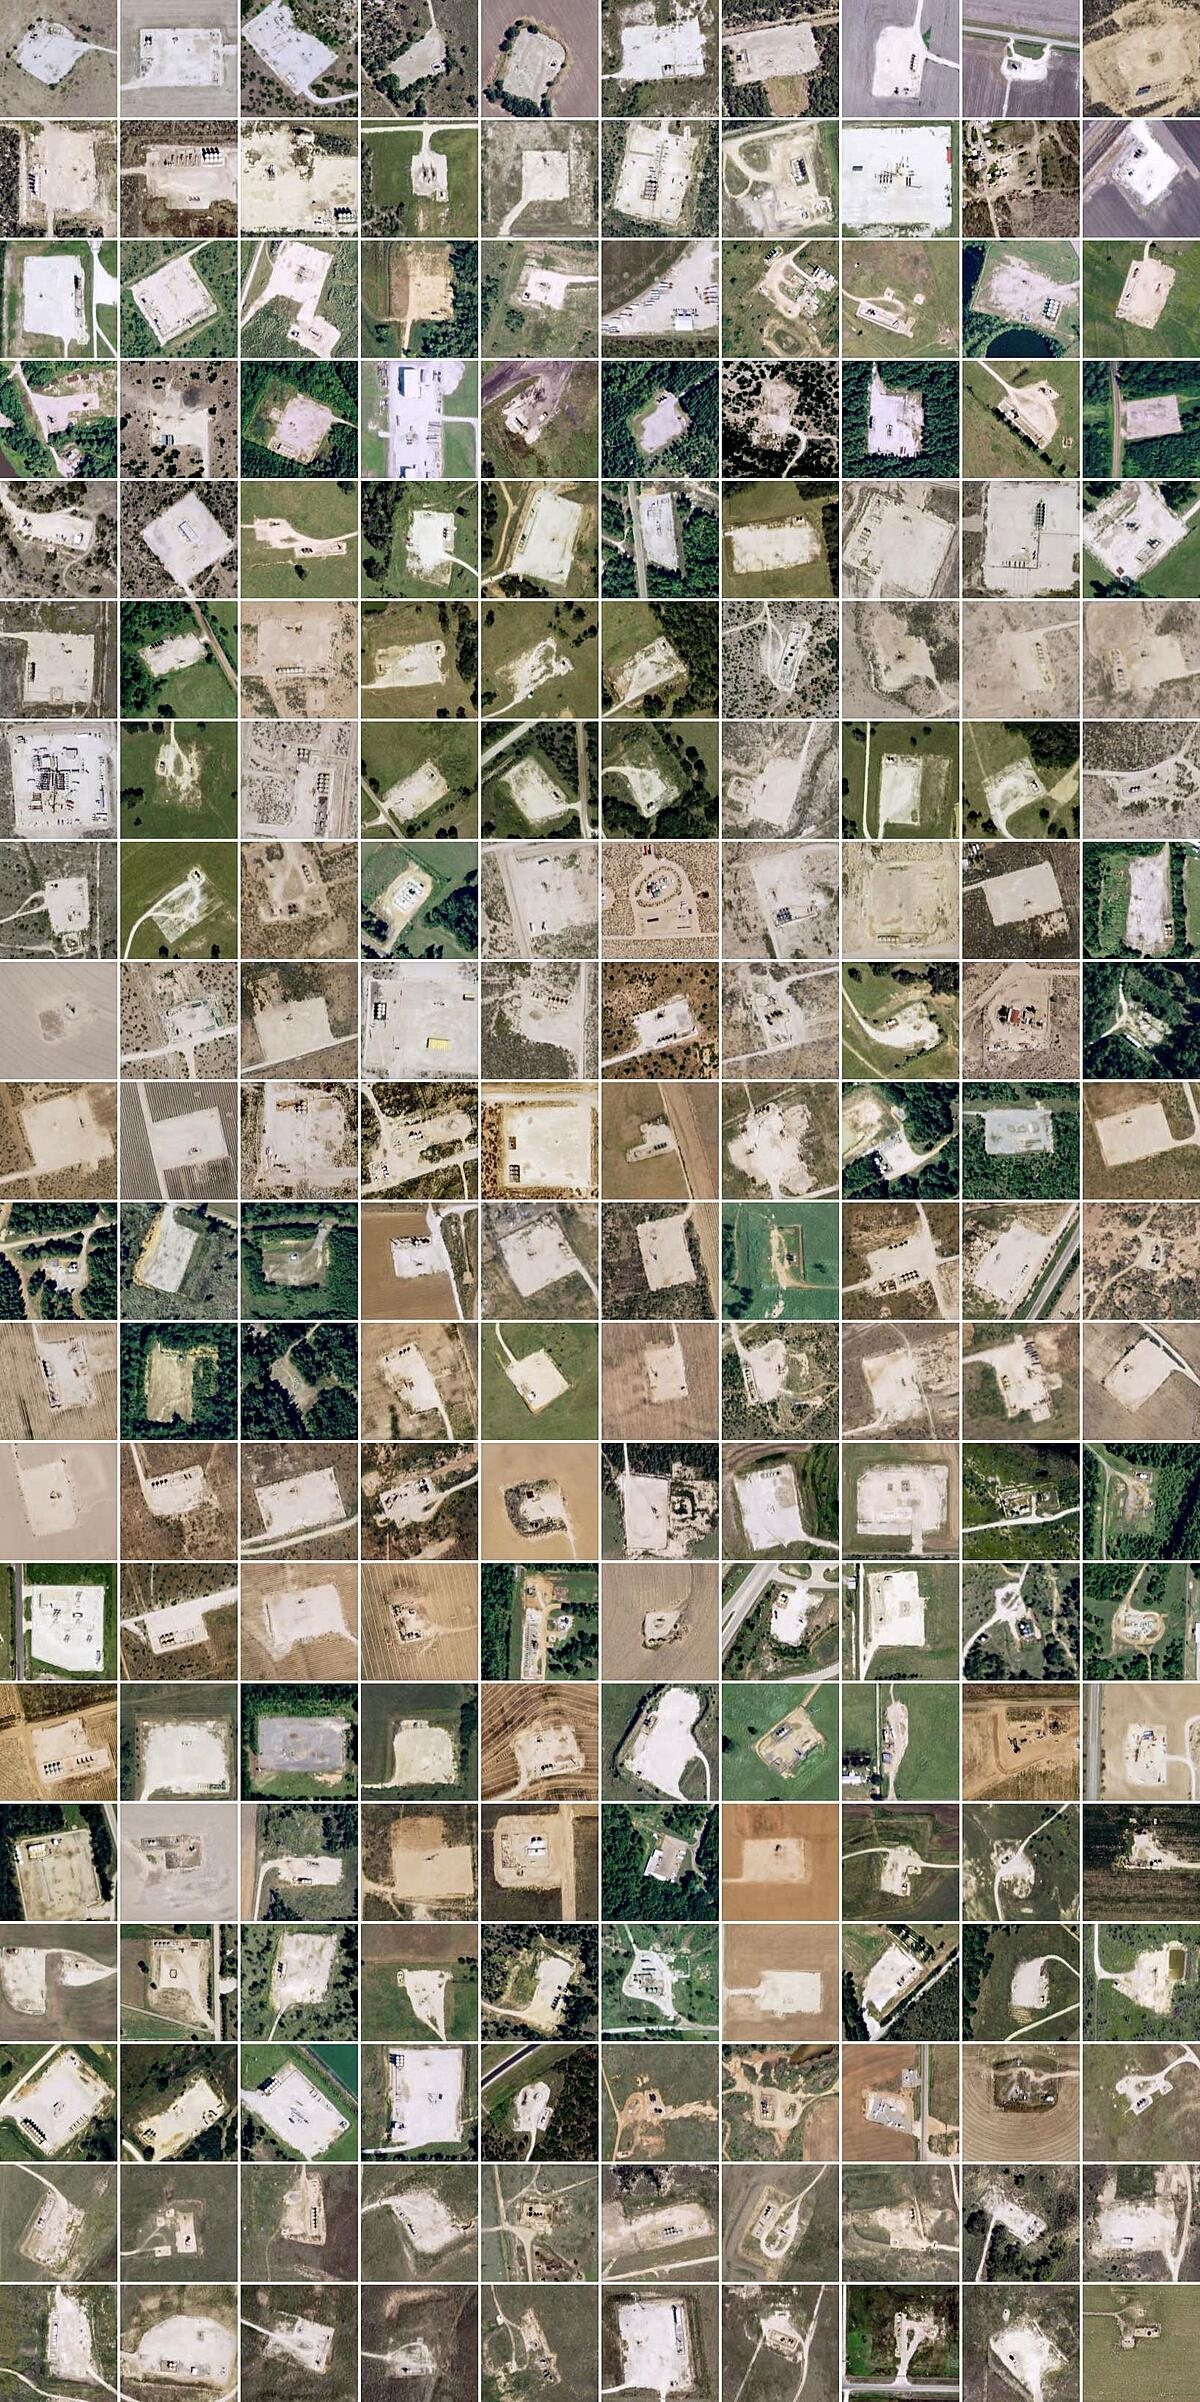 Image tiles of oil and gas well pad detections